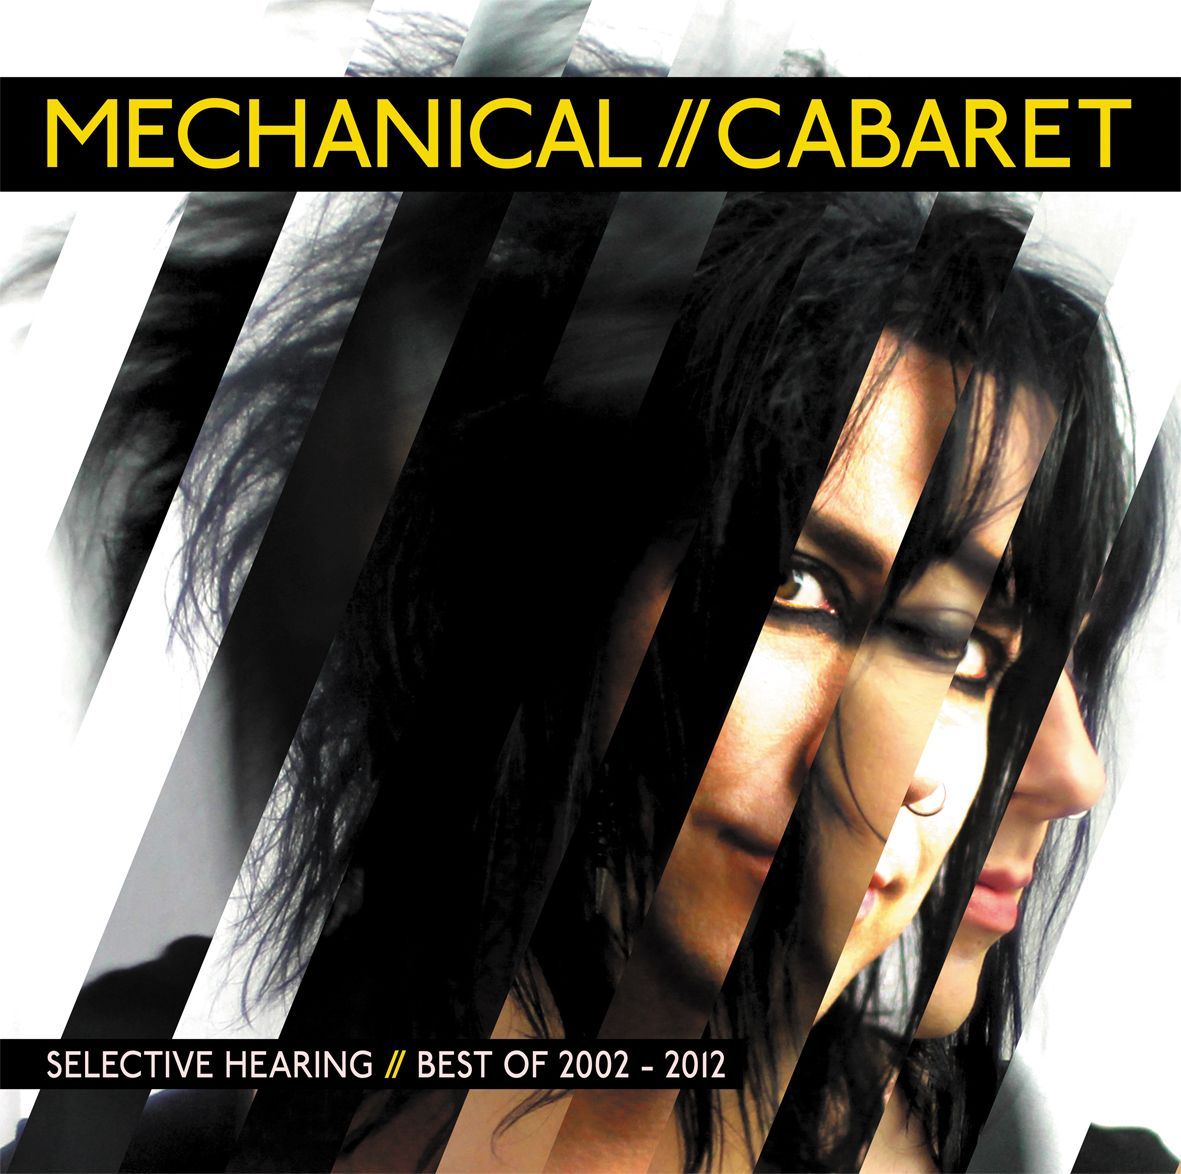 Mechanical Cabaret - Selective Hearing - Album - 12 tracks